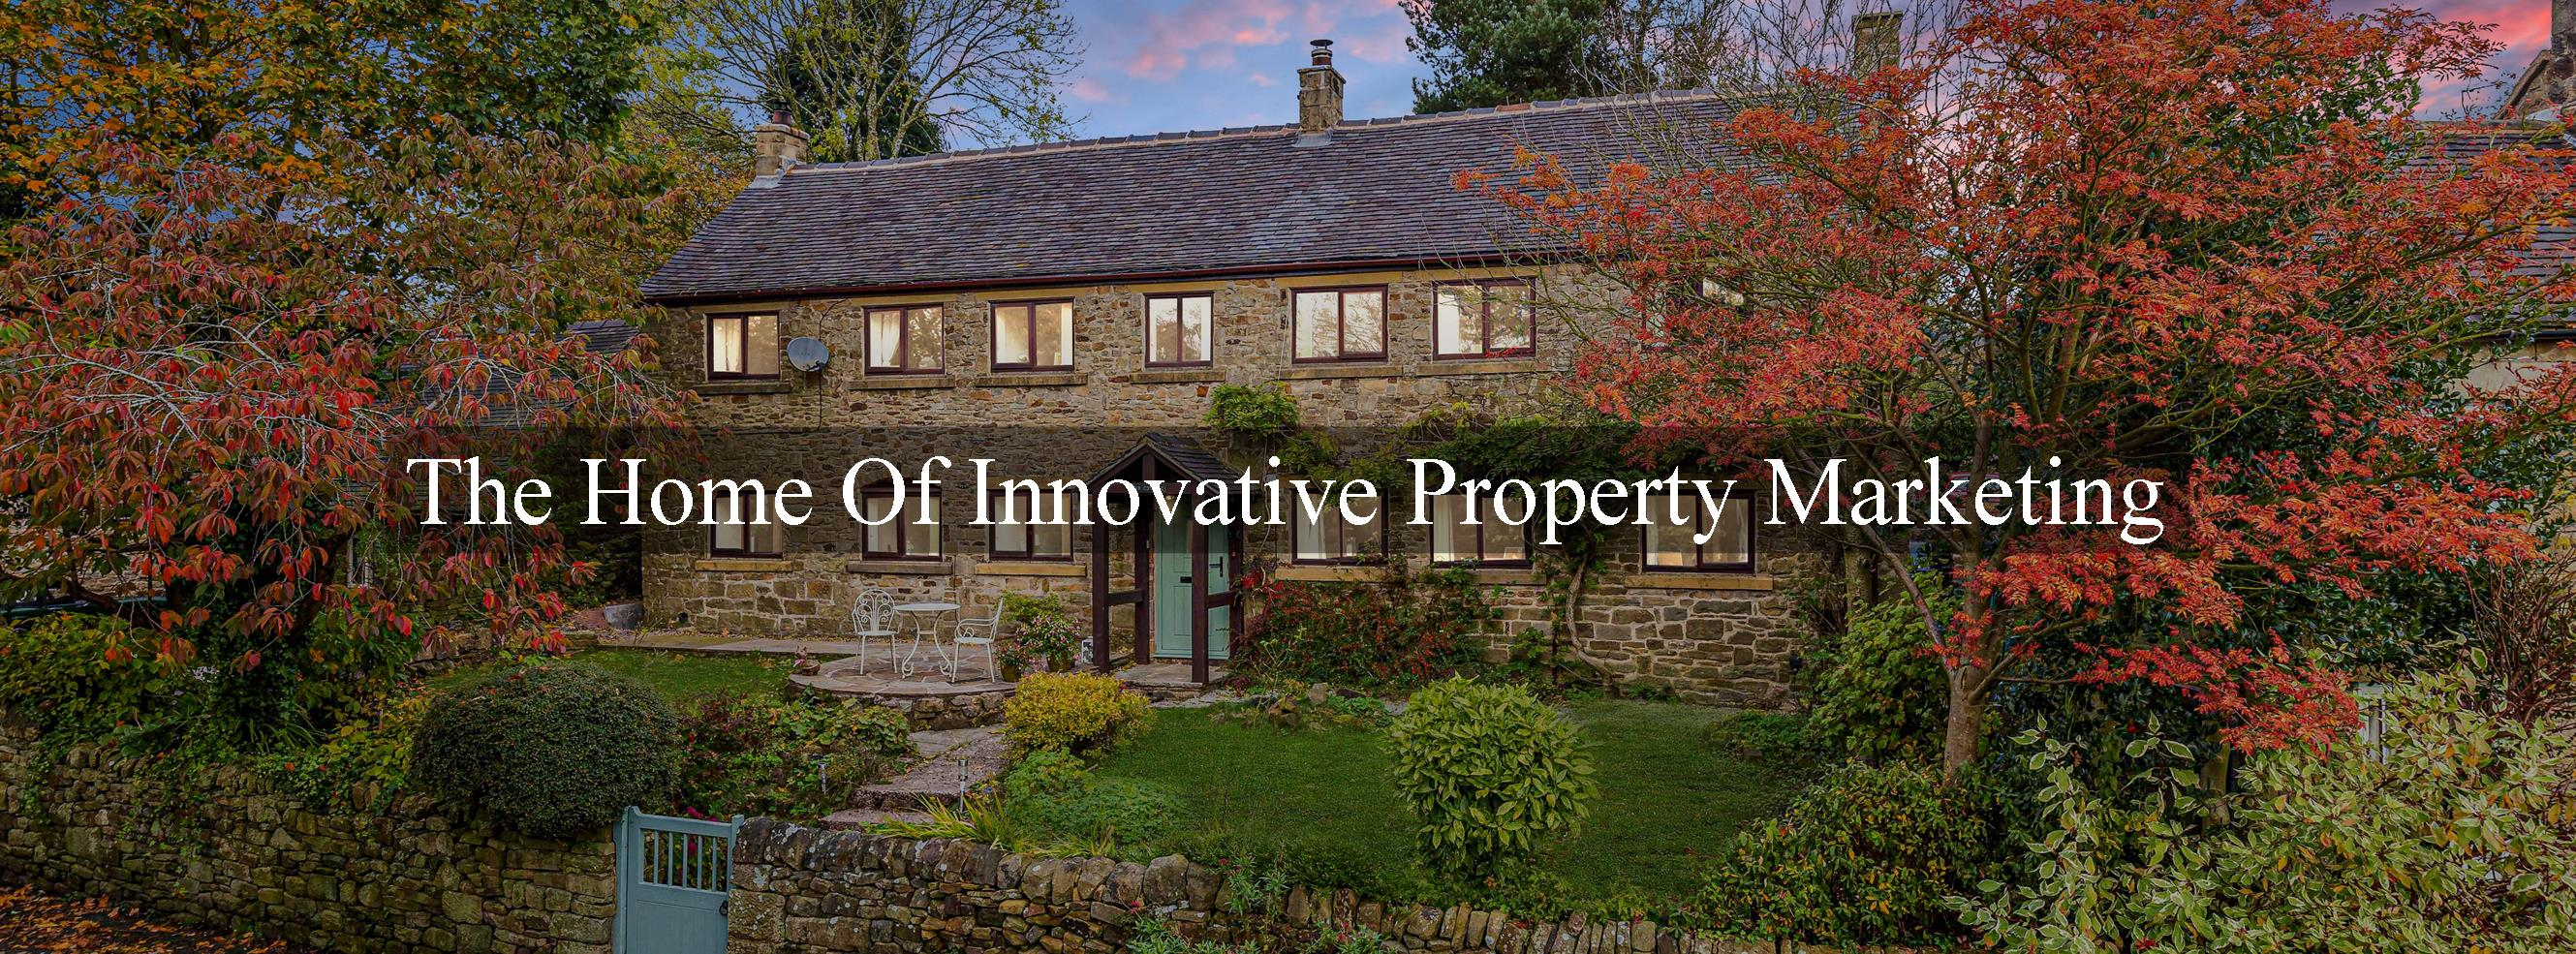 the_home_of_innovative_property_marketing1